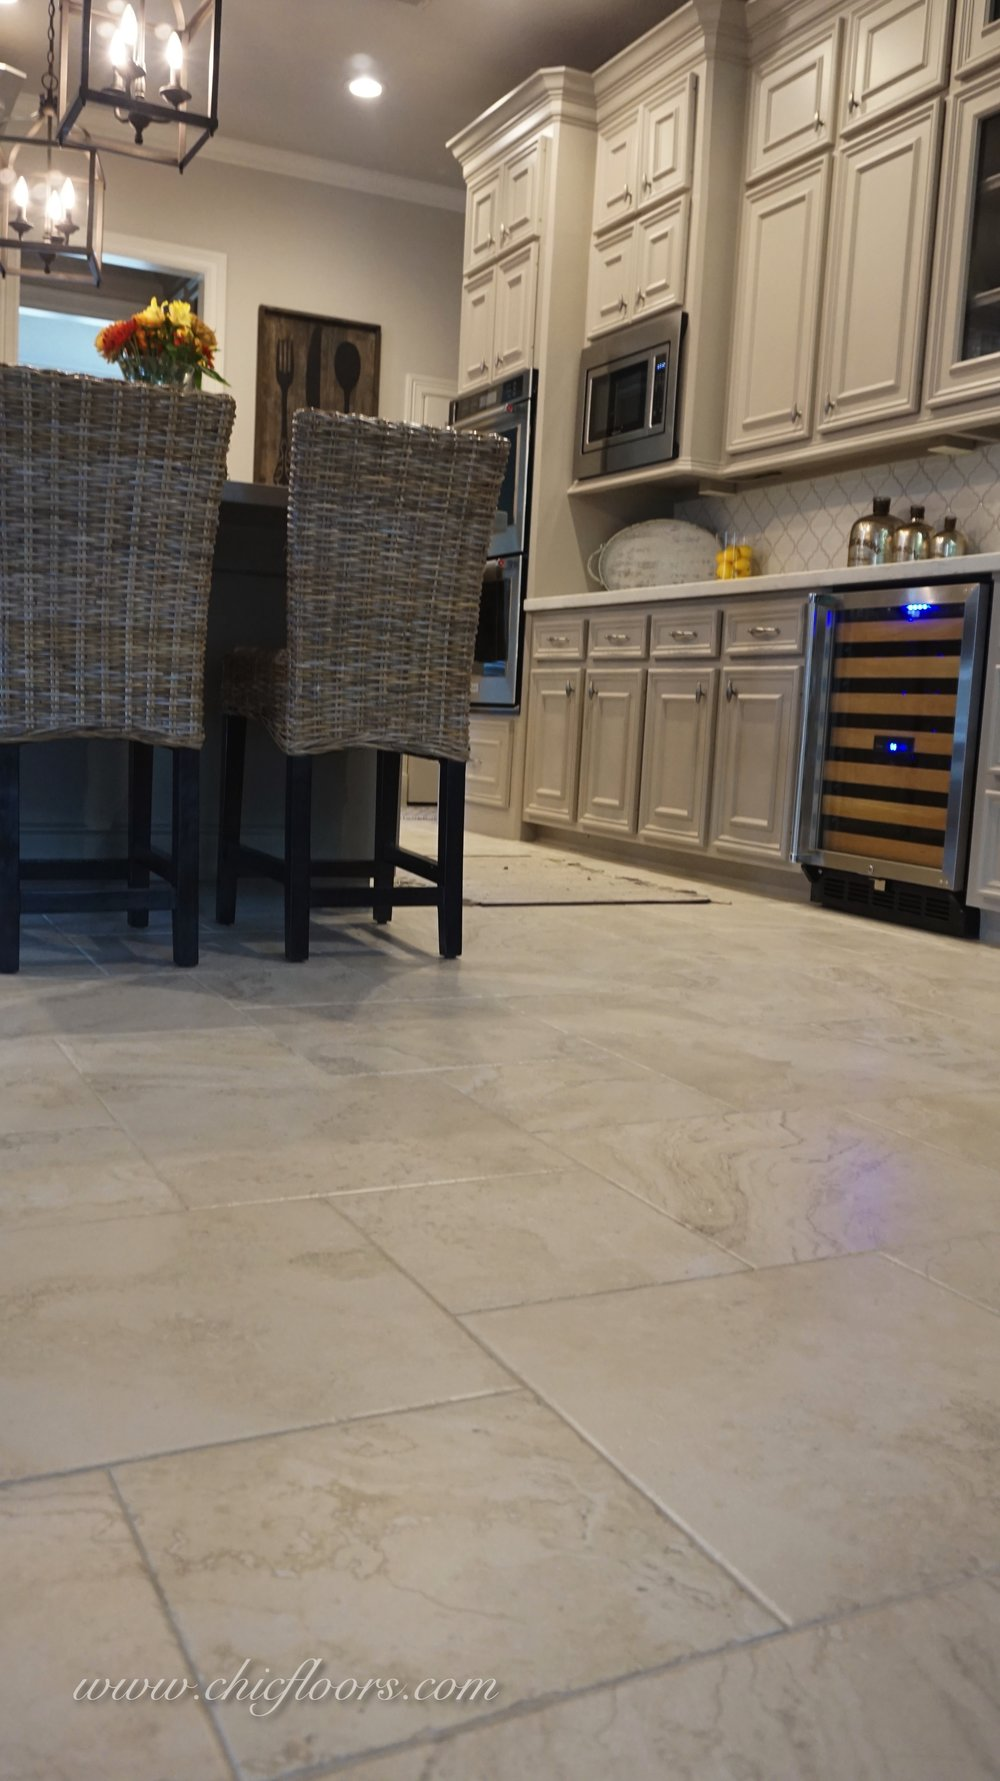 The 18x18 tile pulls together the light gray cabinets, the darker gray island, and the brown island stools.